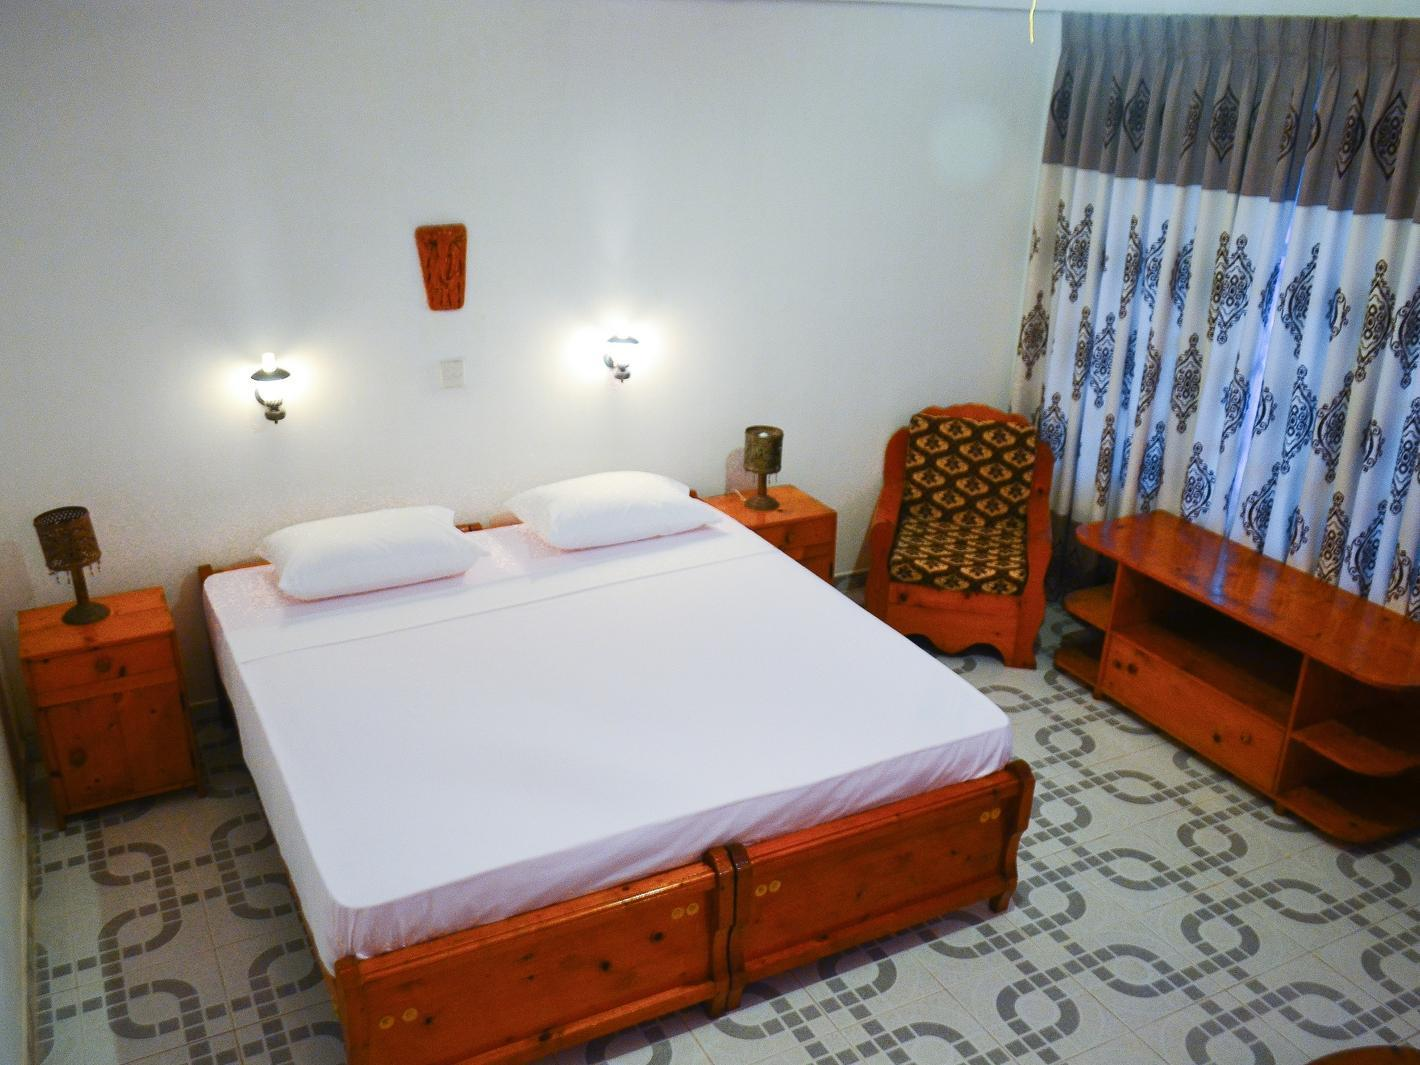 豪华双人床房-带阳台 (Deluxe Double Room with Balcony)